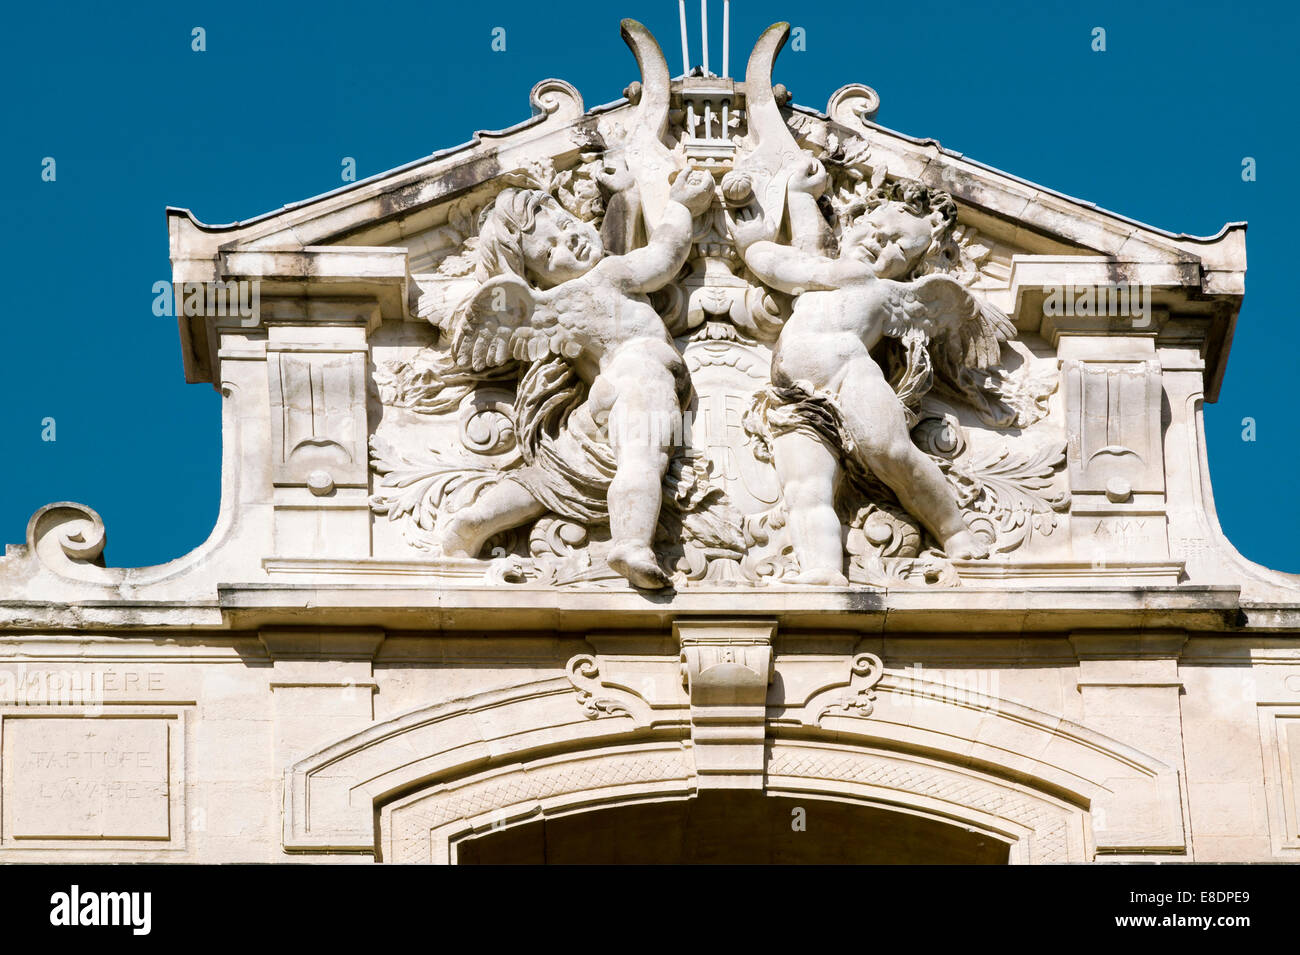 The Sculpted Pediment Of The Theatre,Tarascon,Bouches du Rhone, Provence,France - Stock Image